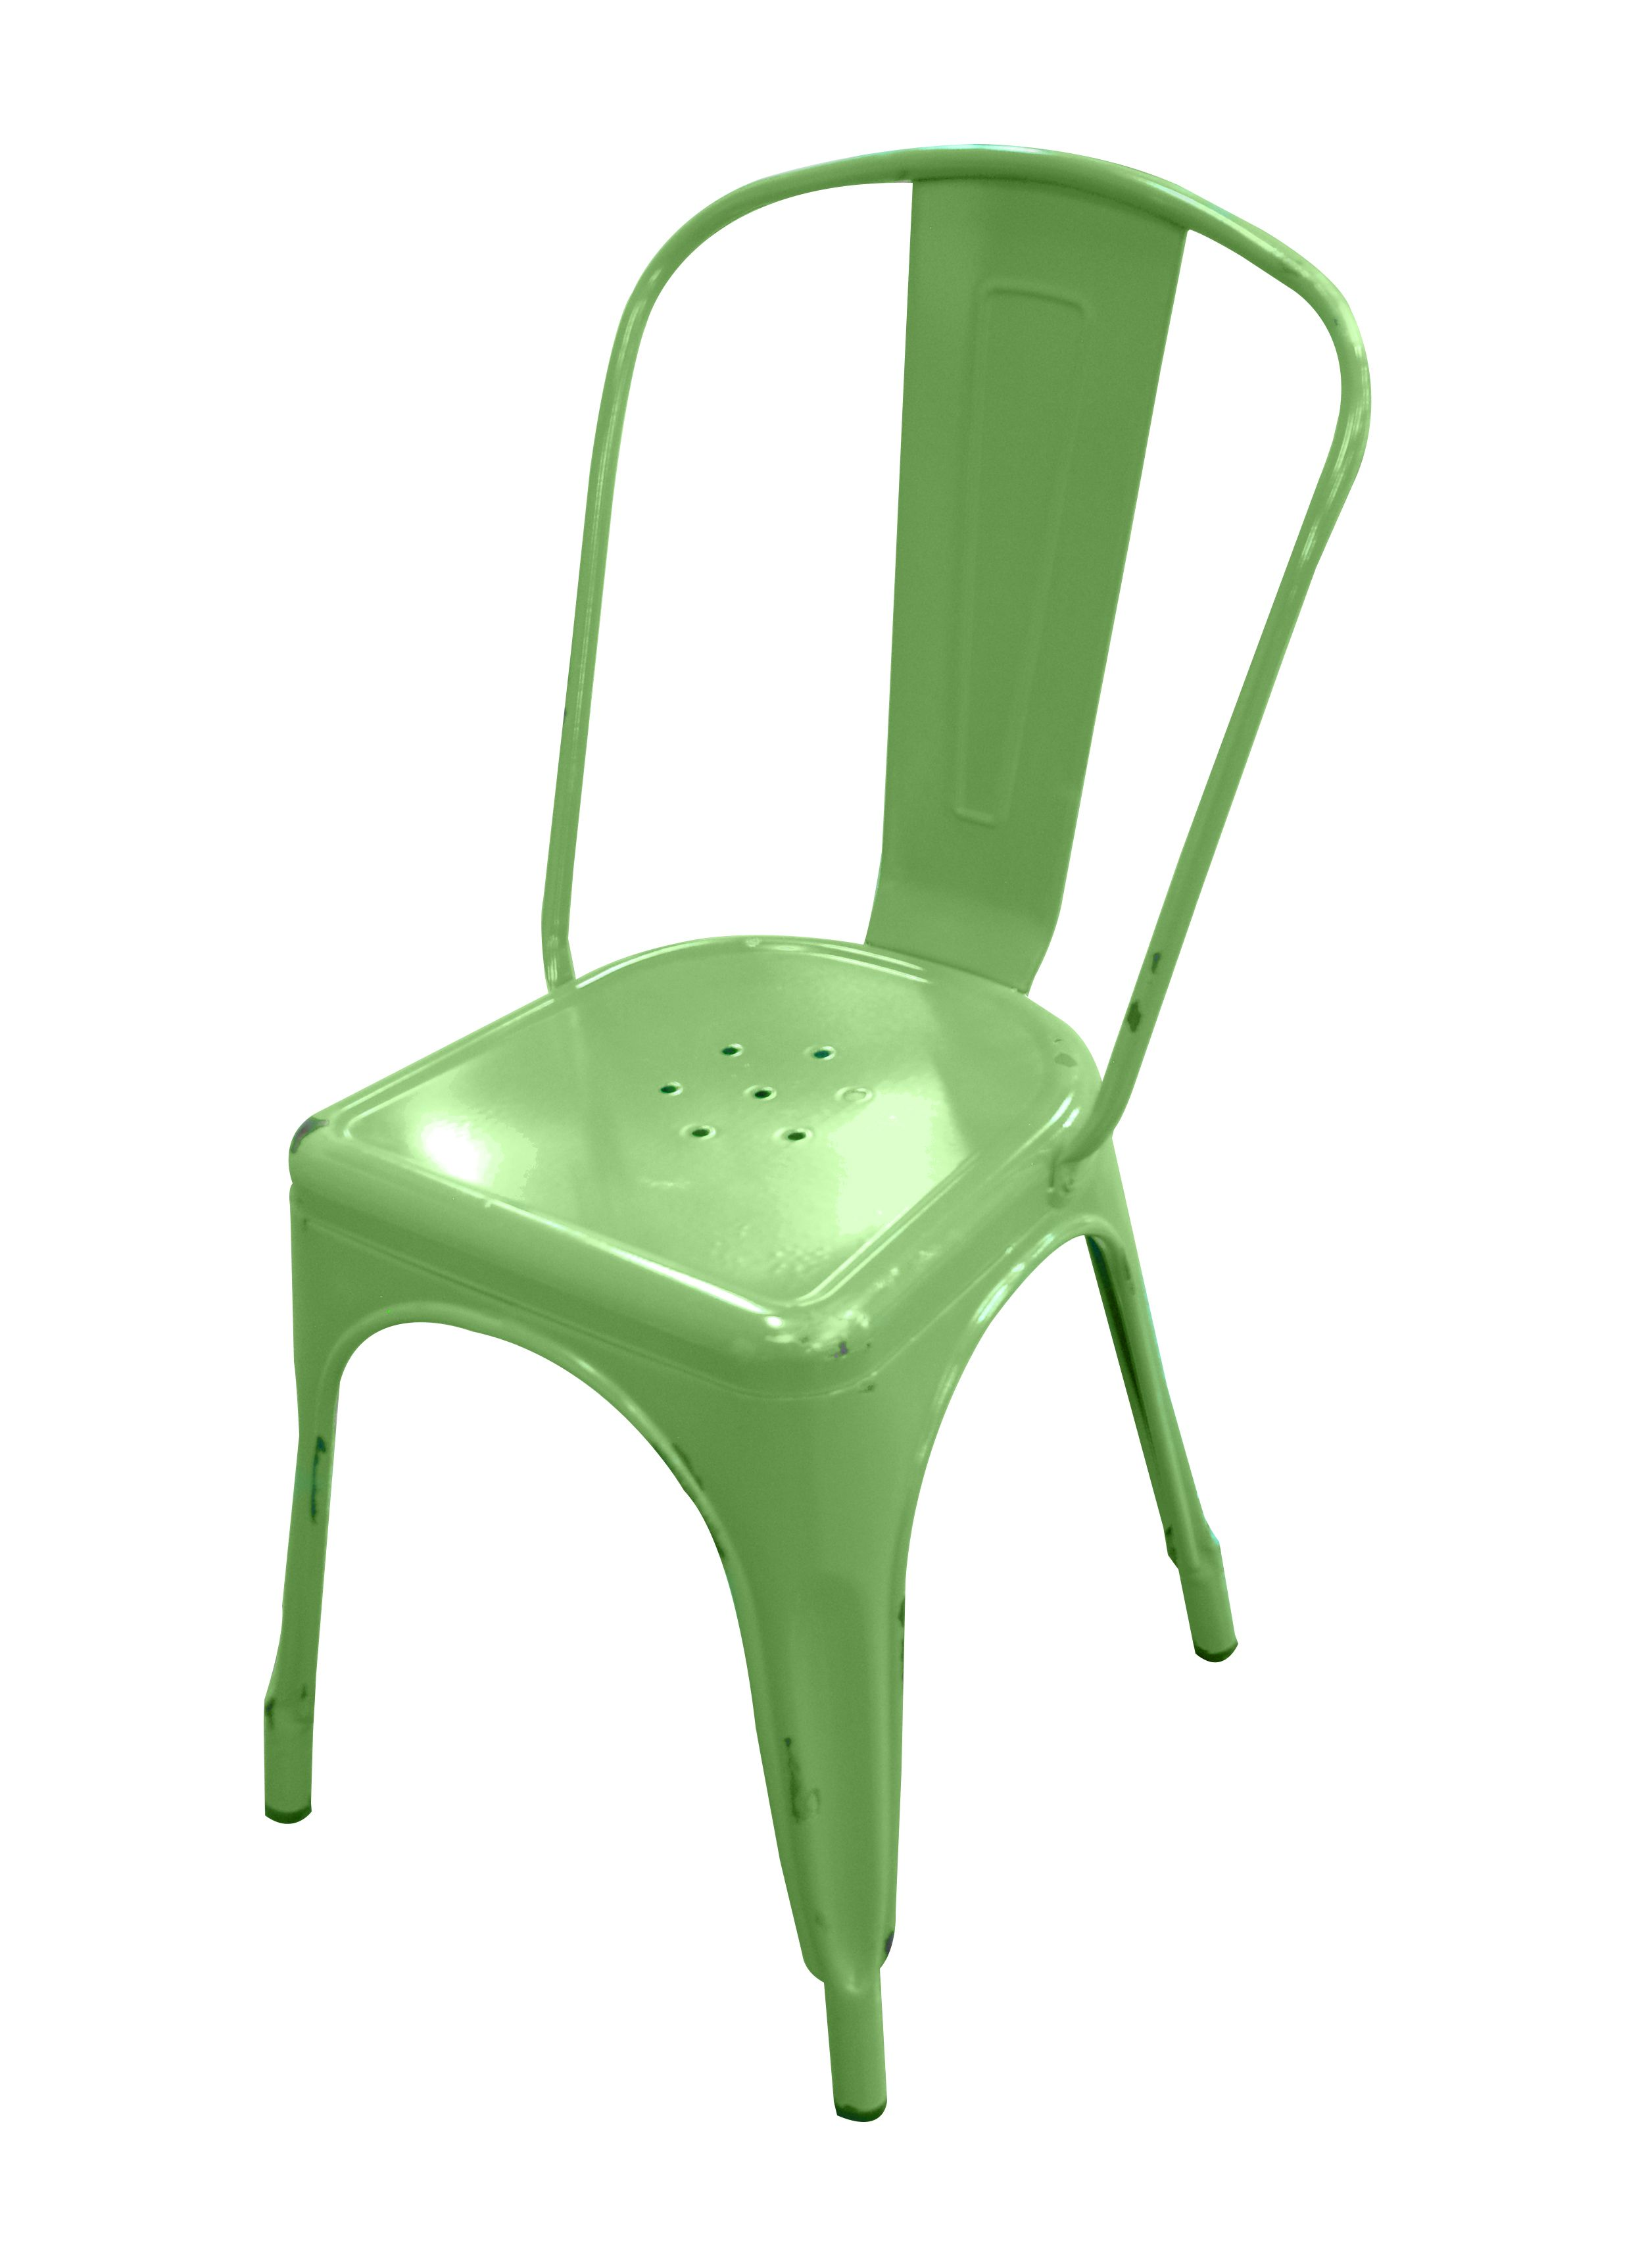 This green chair can be added as a desk chair or dining chairs for a splash of color. Six great colors from walkeredison.com